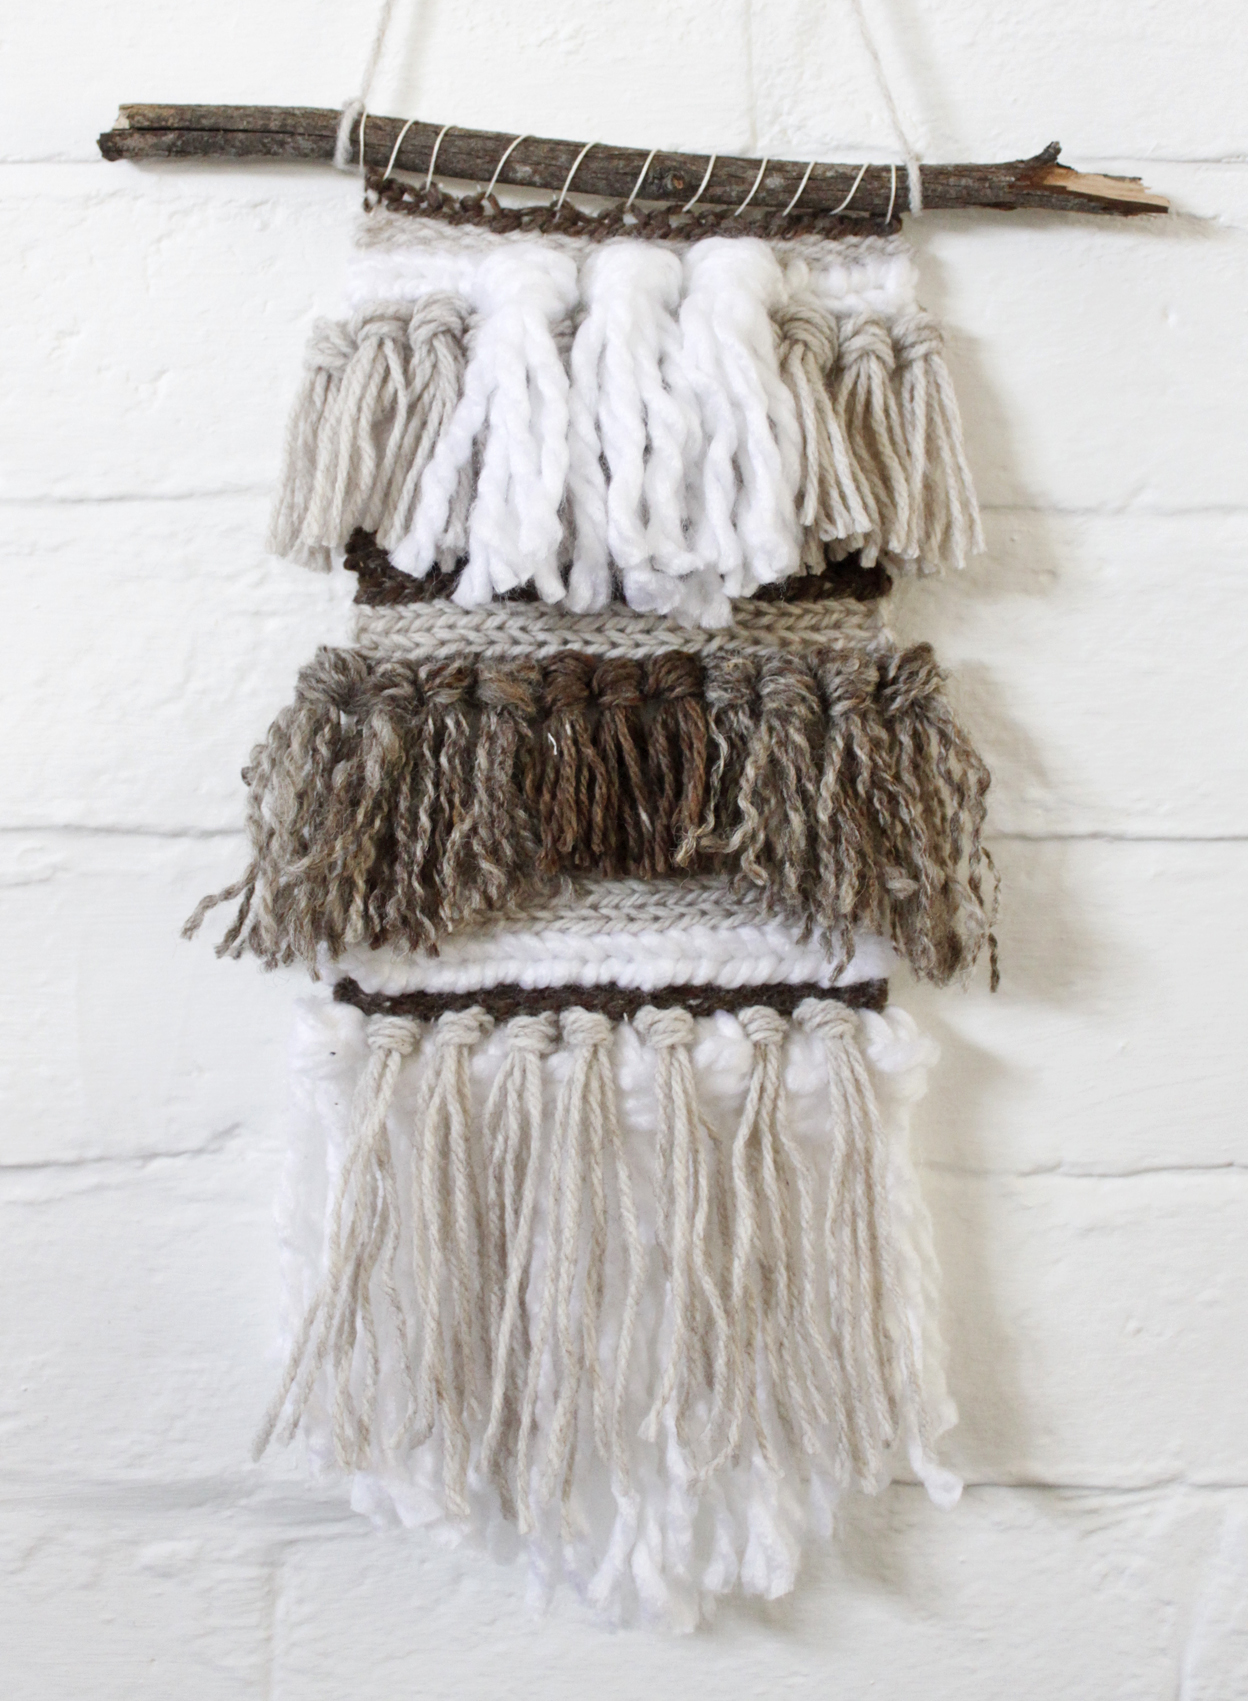 Woven Wall Hanging Workshop, The Corner Store Gallery, Orange NSW